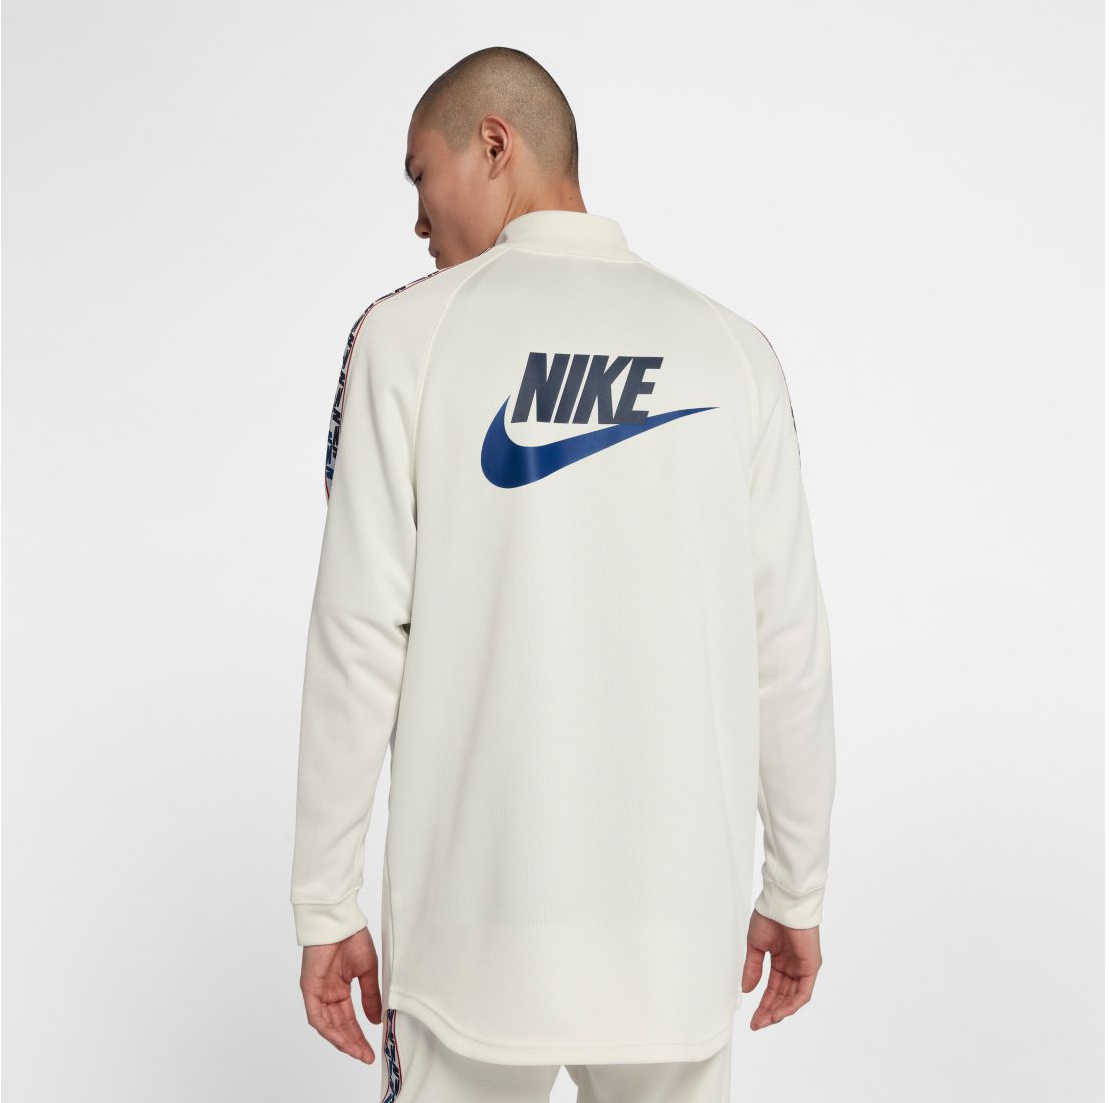 nike-alternate-galaxy-sneaker-jacket-match-2